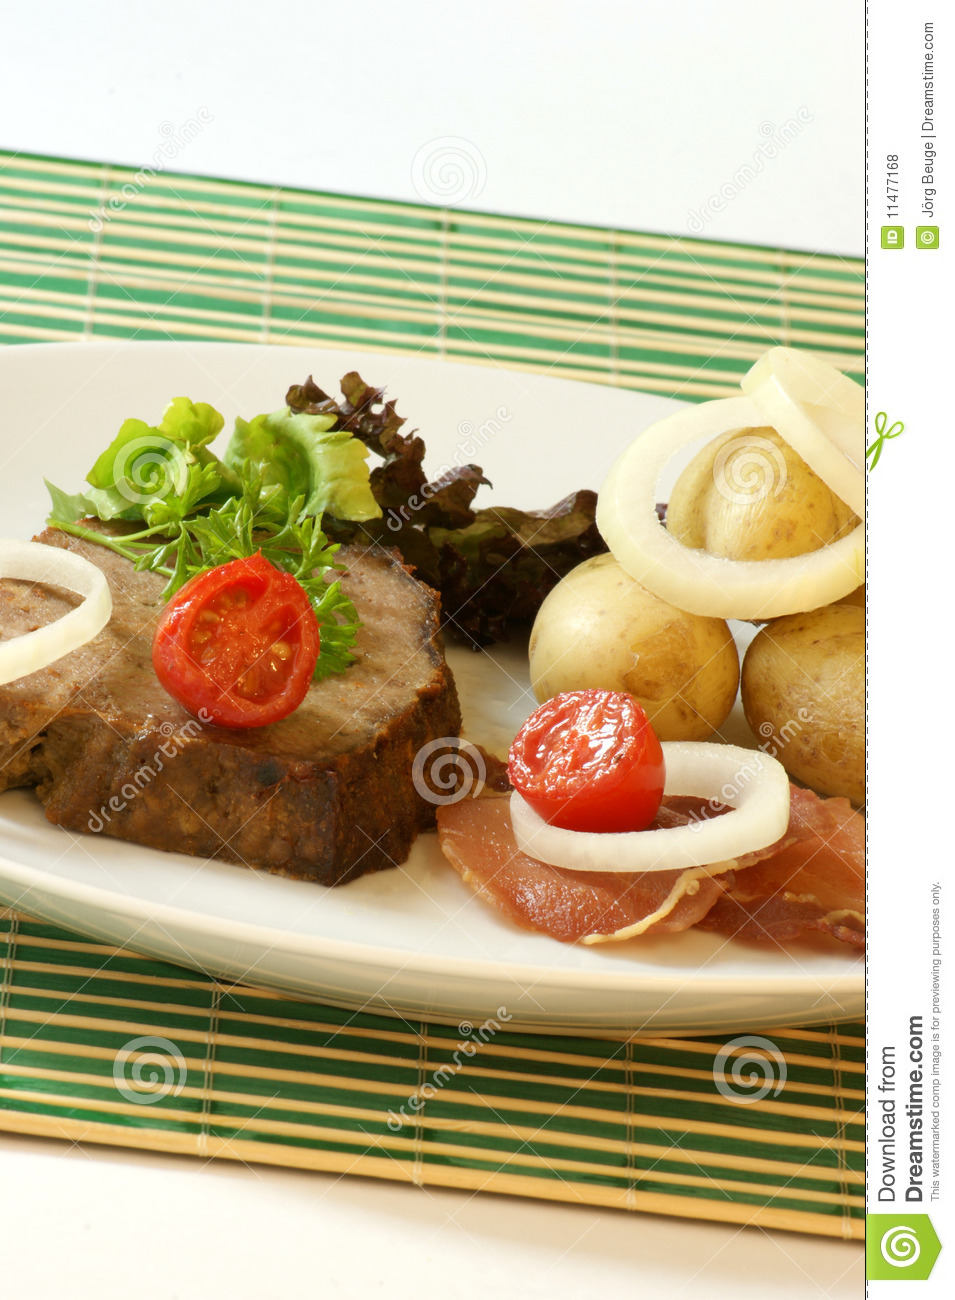 Sliced Meat Loaf With Organic Vegetable Royalty Free Stock Photos